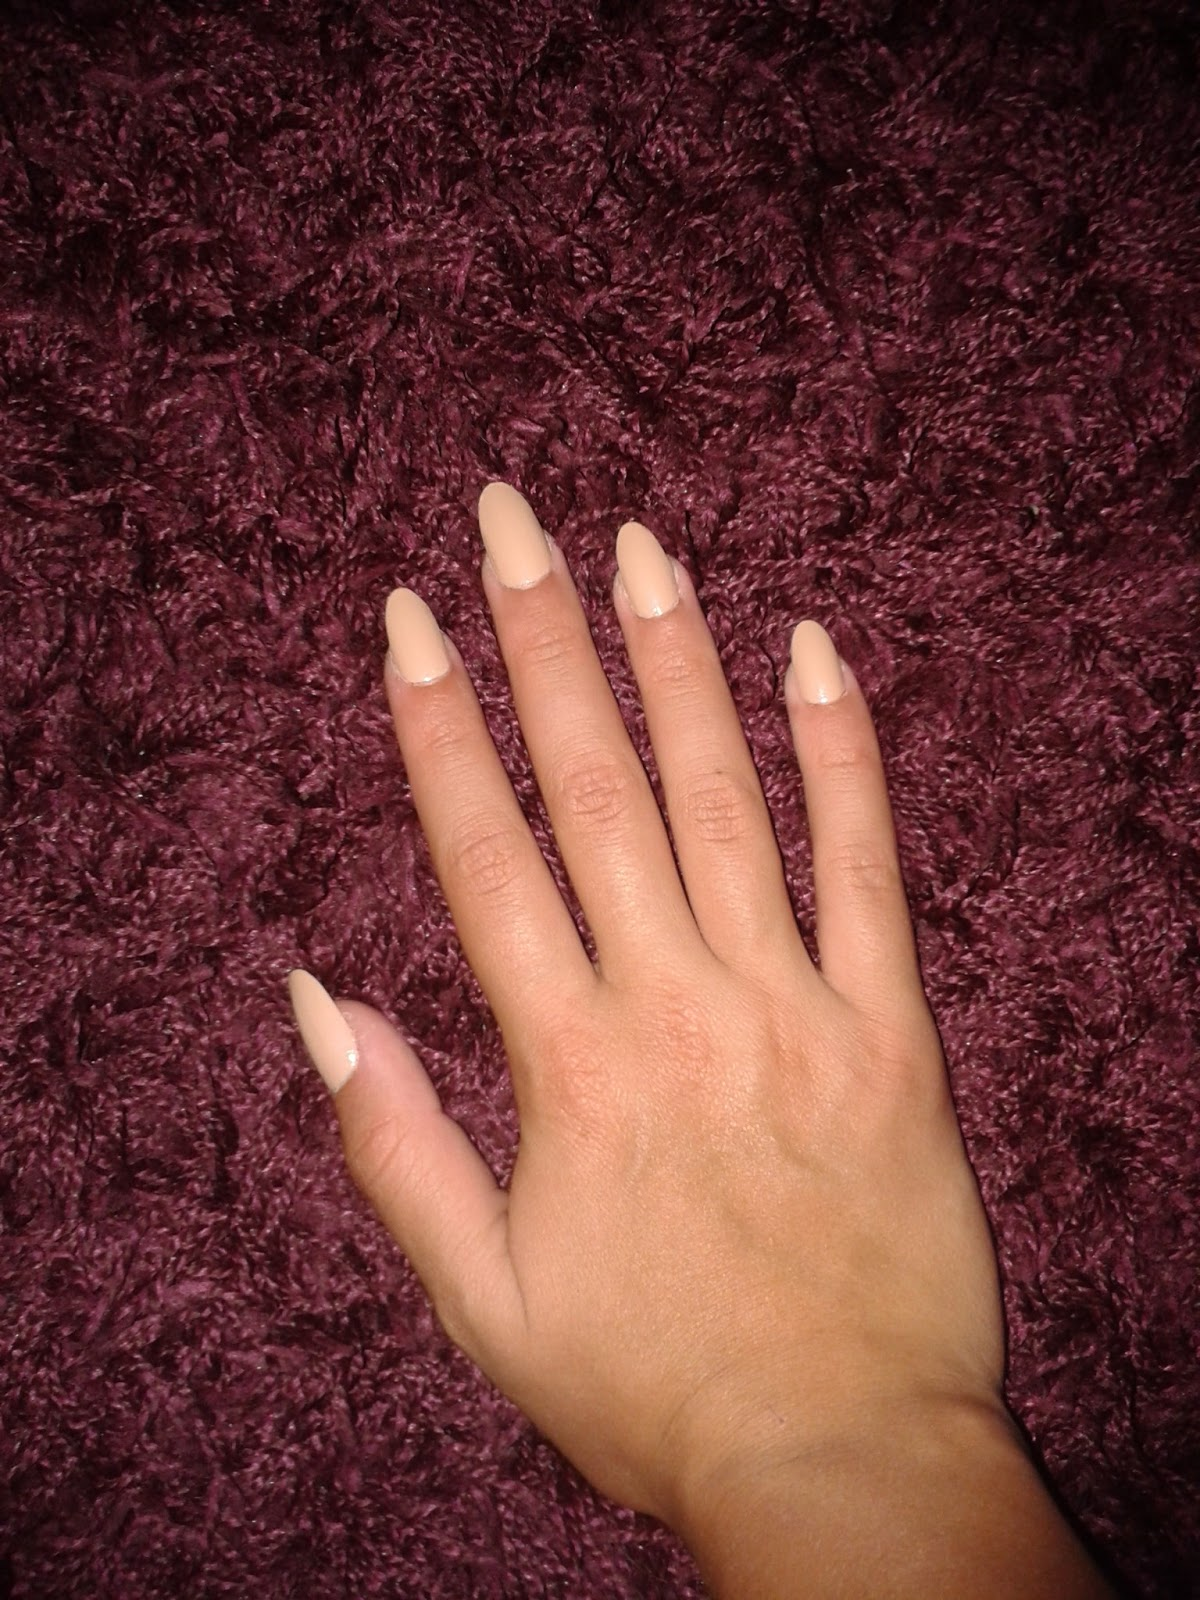 Cute nails for you